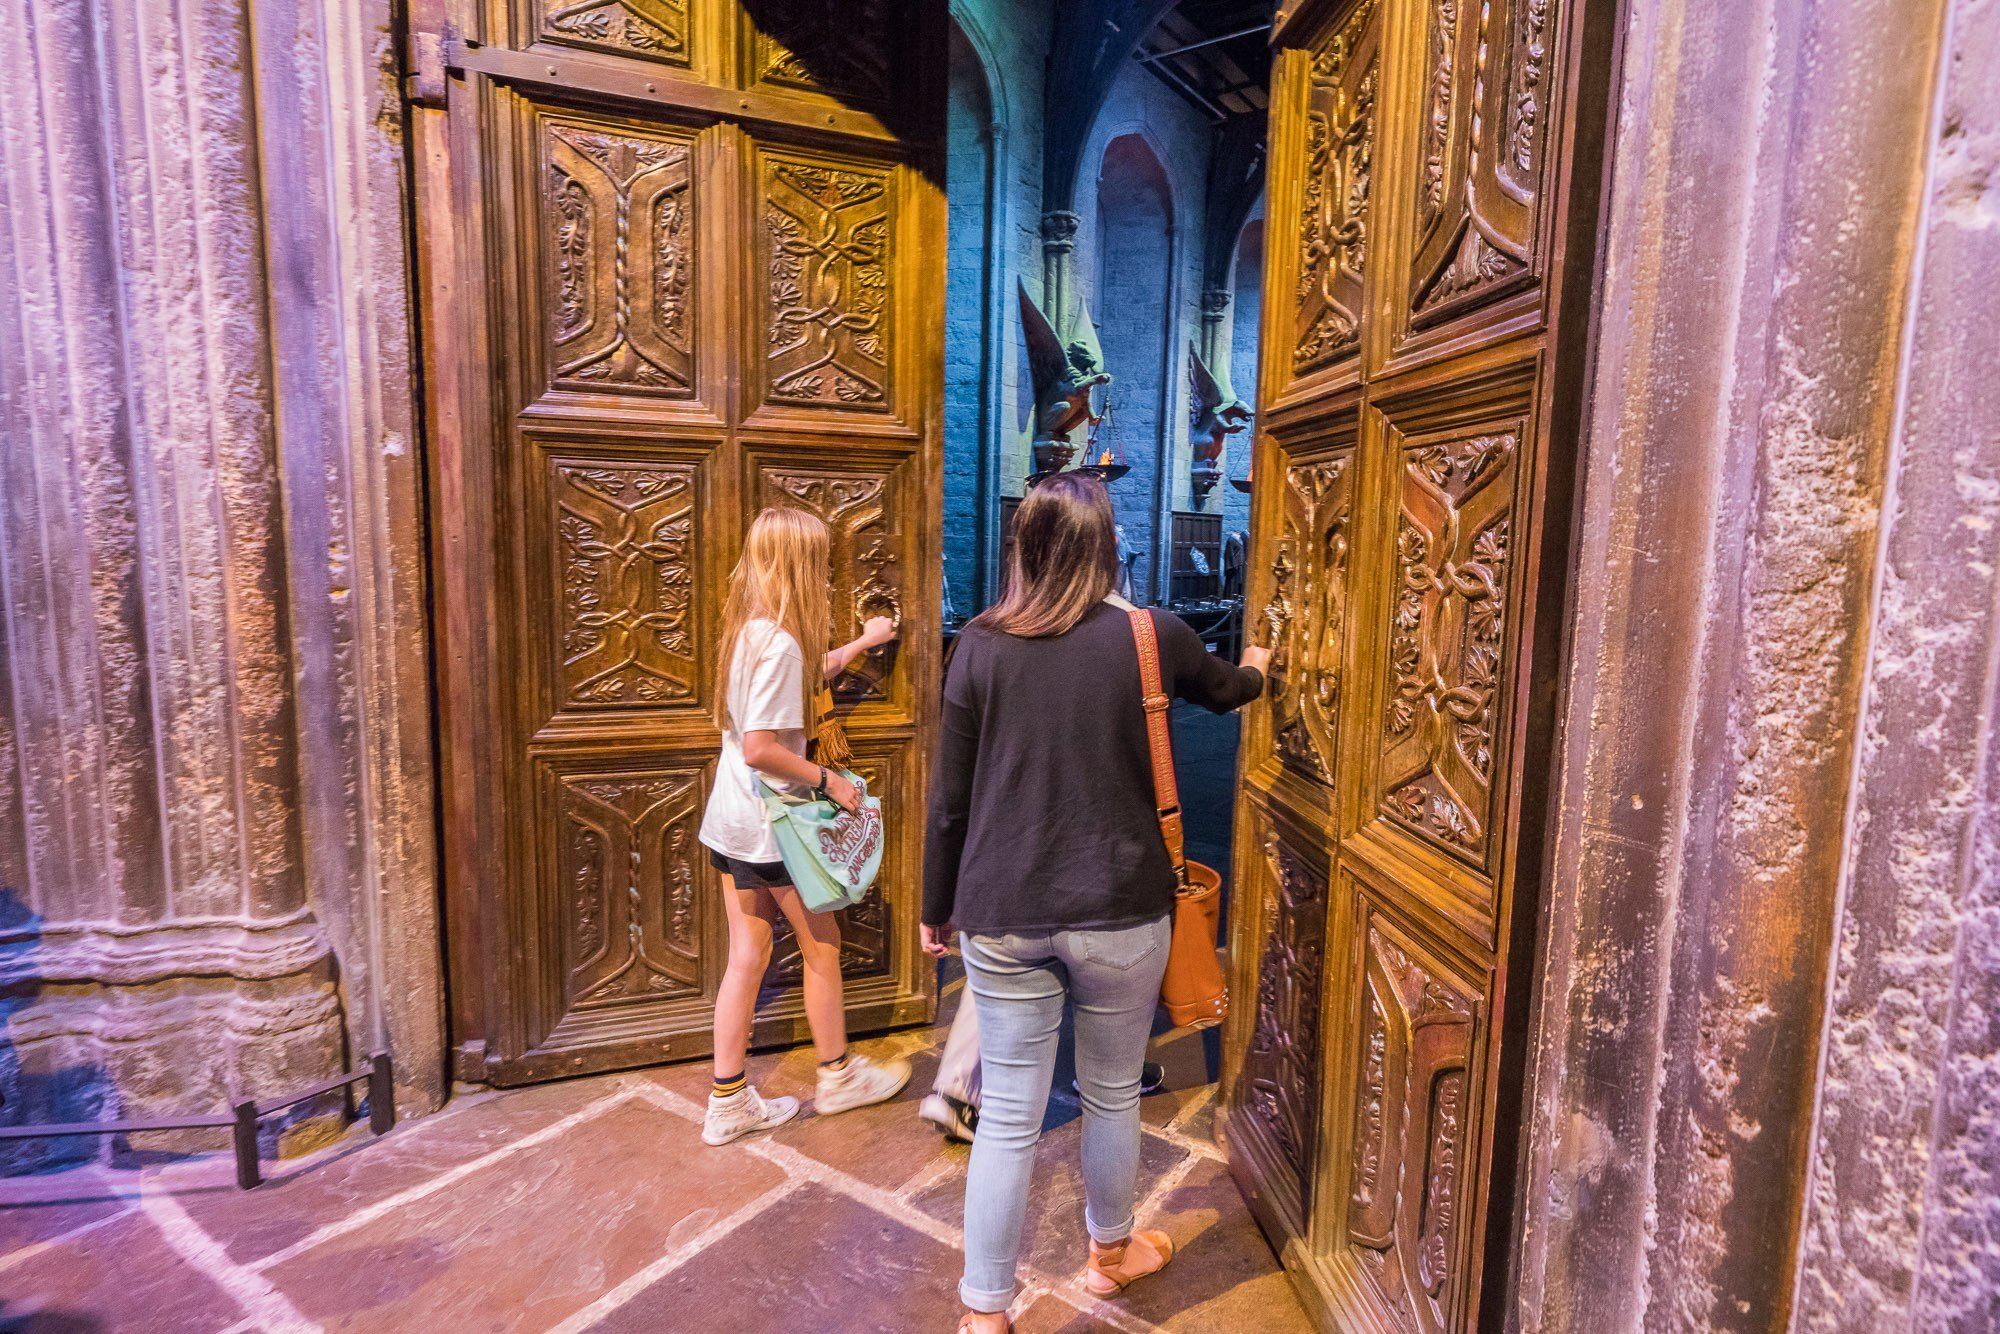 A review of the Warner Bros. Studio Tour London - someone gets to open the doors to the Great Hall.